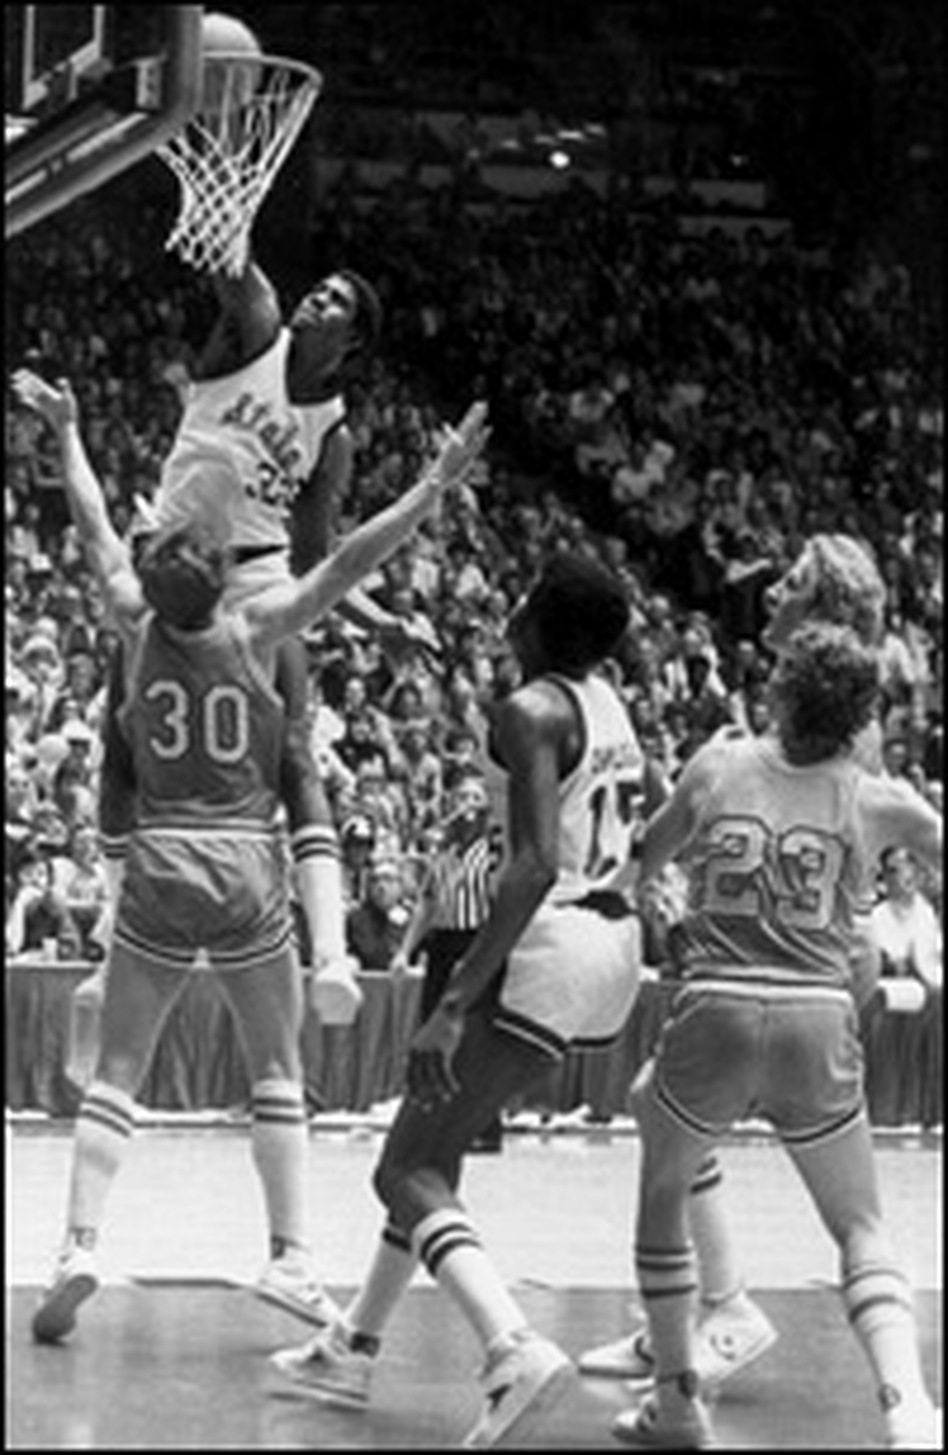 Magic Johnson dunks the basketball against Bob Heaton of the Indiana State University Sycamores while Larry Bird (standing in front of No. 23) watches.